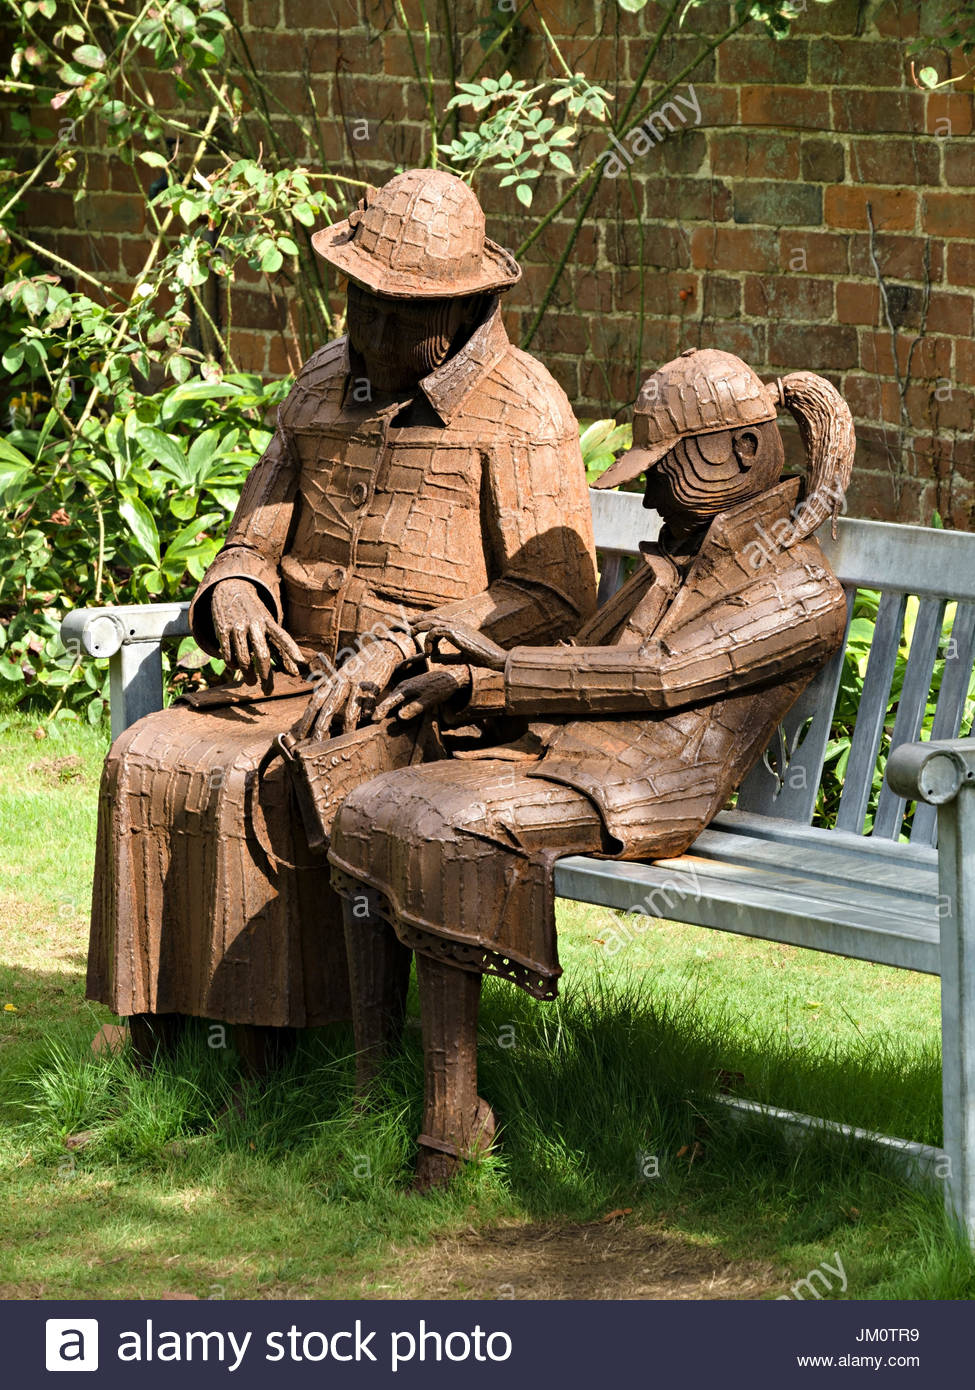 'Relative Treats (Painkillers and Sweets)' steel sculpture, by Ray Lonsdale, Doddington Hall Sculpture Exhibition - Stock Image